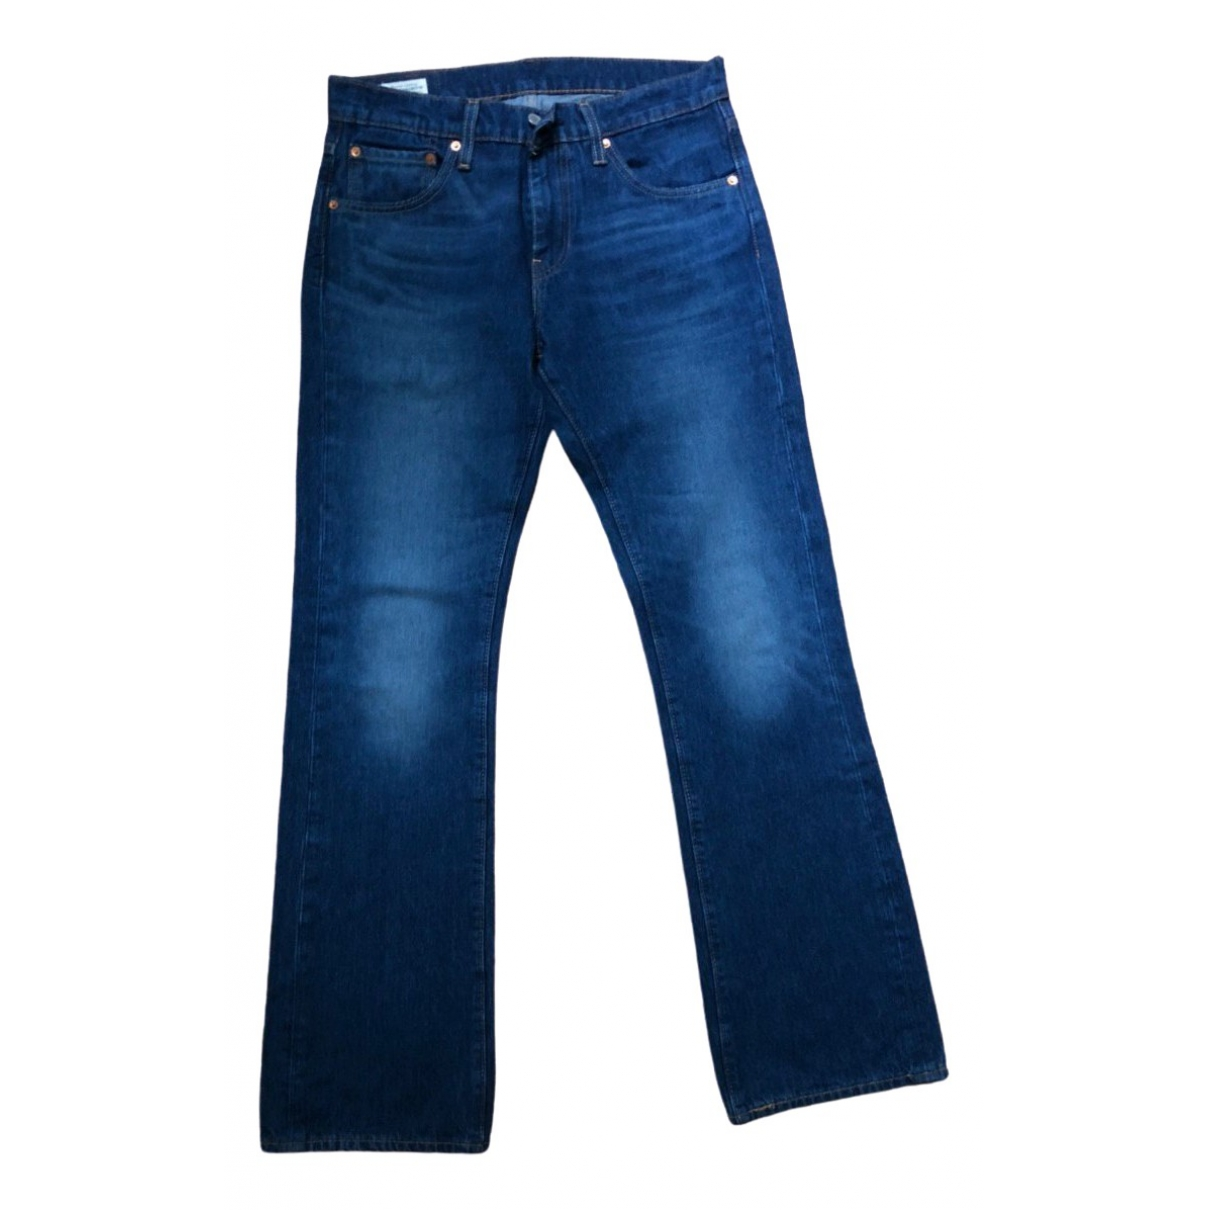 Levi's 527 Blue Cotton Jeans for Men 31 US